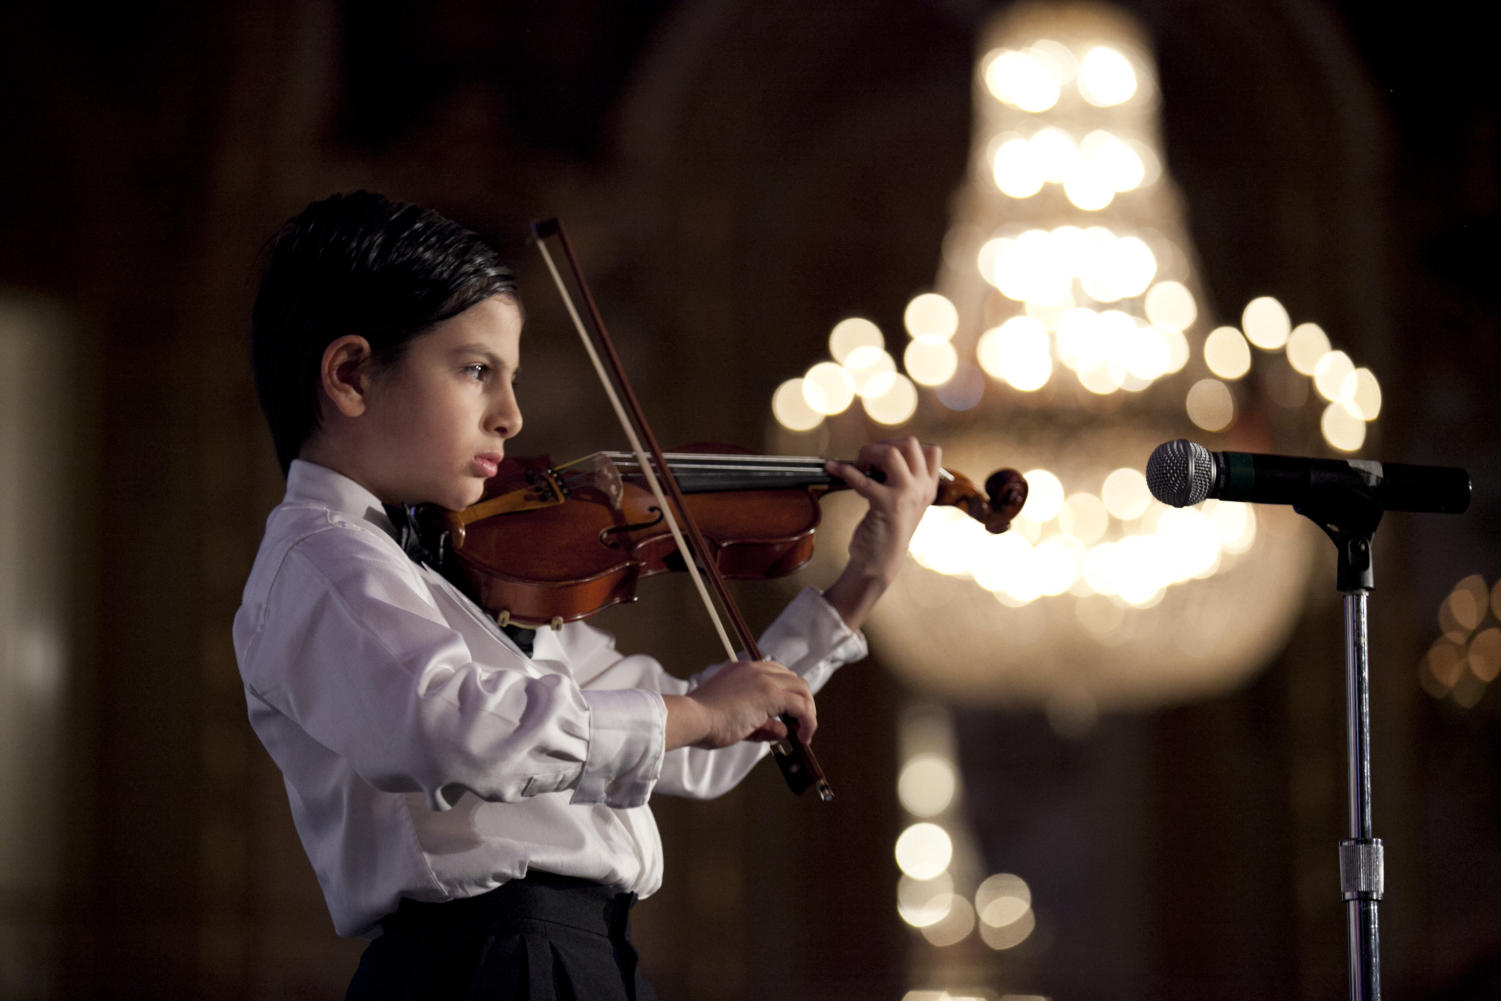 Karim Al-Zahabbi is an academic genius and a musical prodigy.